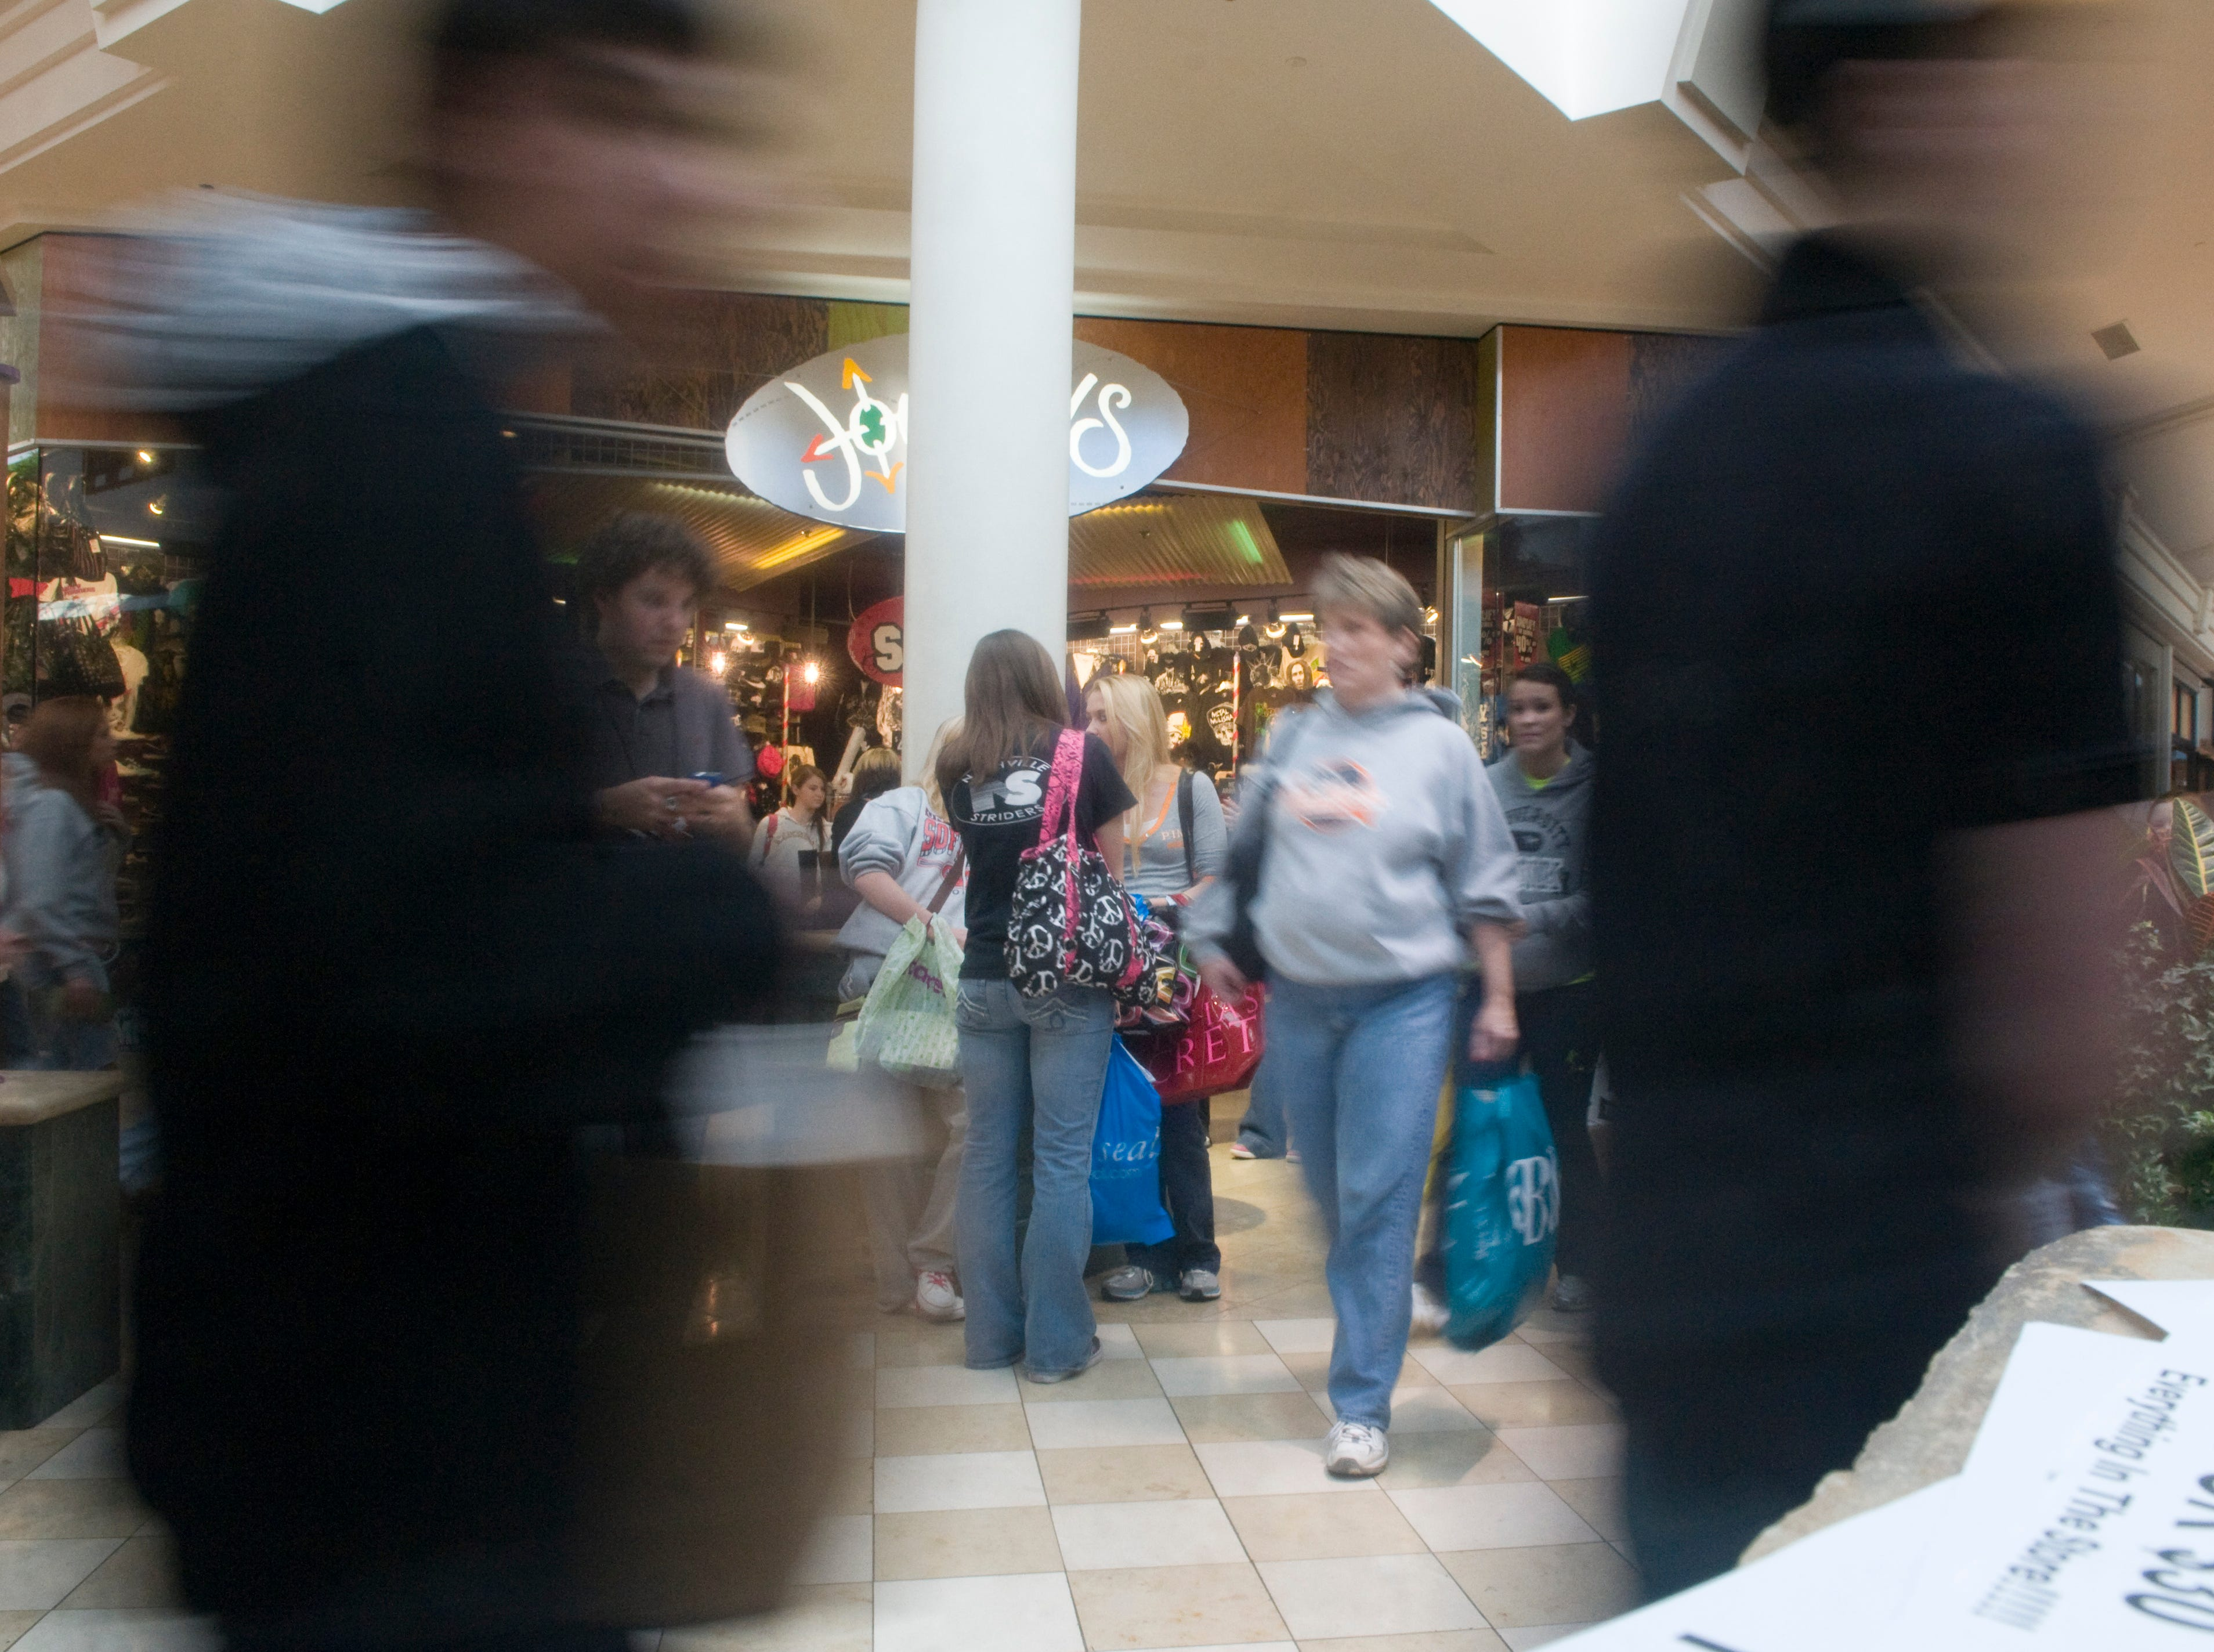 Black Friday shoppers are a blur as they move through West Town Mall the day after Thanksgiving.Coverage of Black Friday shopping. Here's Josh Flory's schedule: Best Buy, Turkey Creek. The store opens at 5:00, but I'd like to be there a little early to get interviews while people stand in line. 6:30 a.m. @ Toys R Us. 7:30 a.m. @ West Town Mall. 9:00 a.m. @ Knoxville Center Mall. You don't have to photograph all these places but you have clearances from all.Friday, November 27, 2009